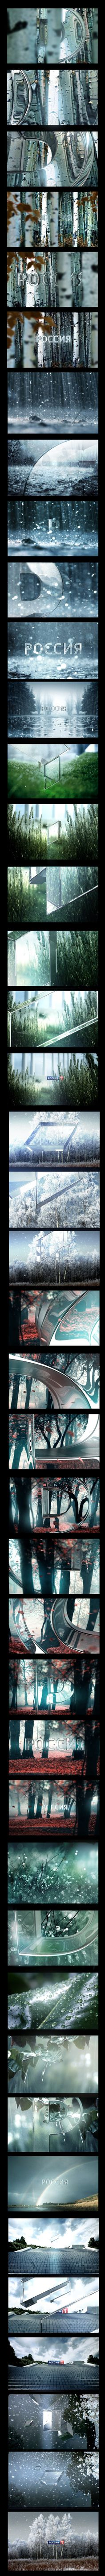 RUSSIA_1 channel ID's  for autumn 2012 by egor antonov, via Behance